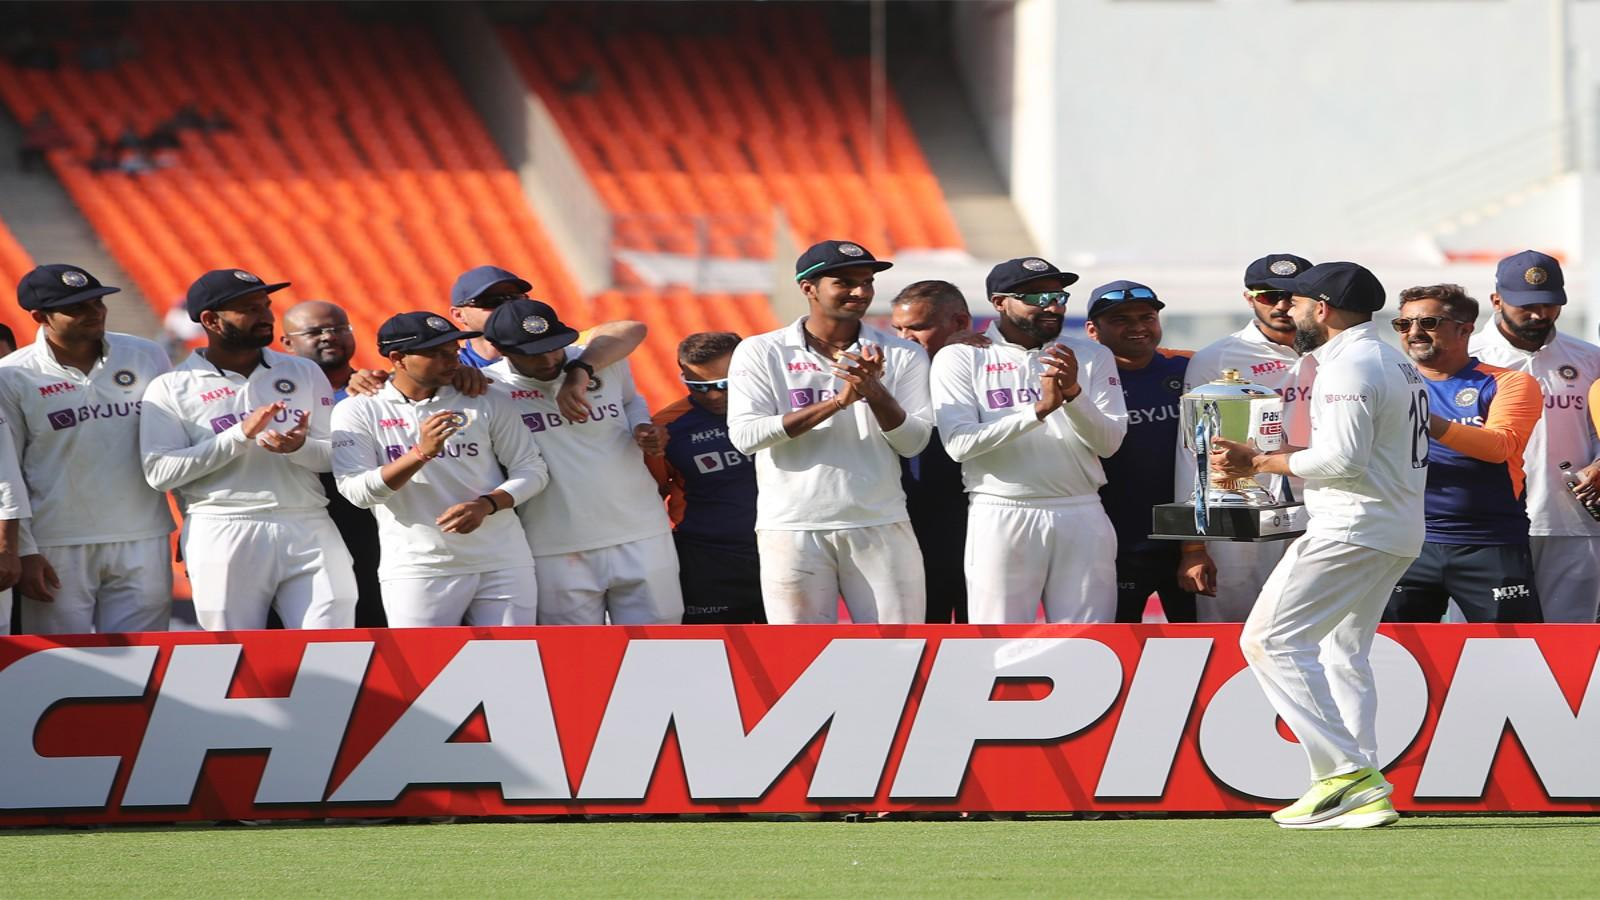 india-vs-england-india-crush-england-in-4th-test-to-win-series-3-1